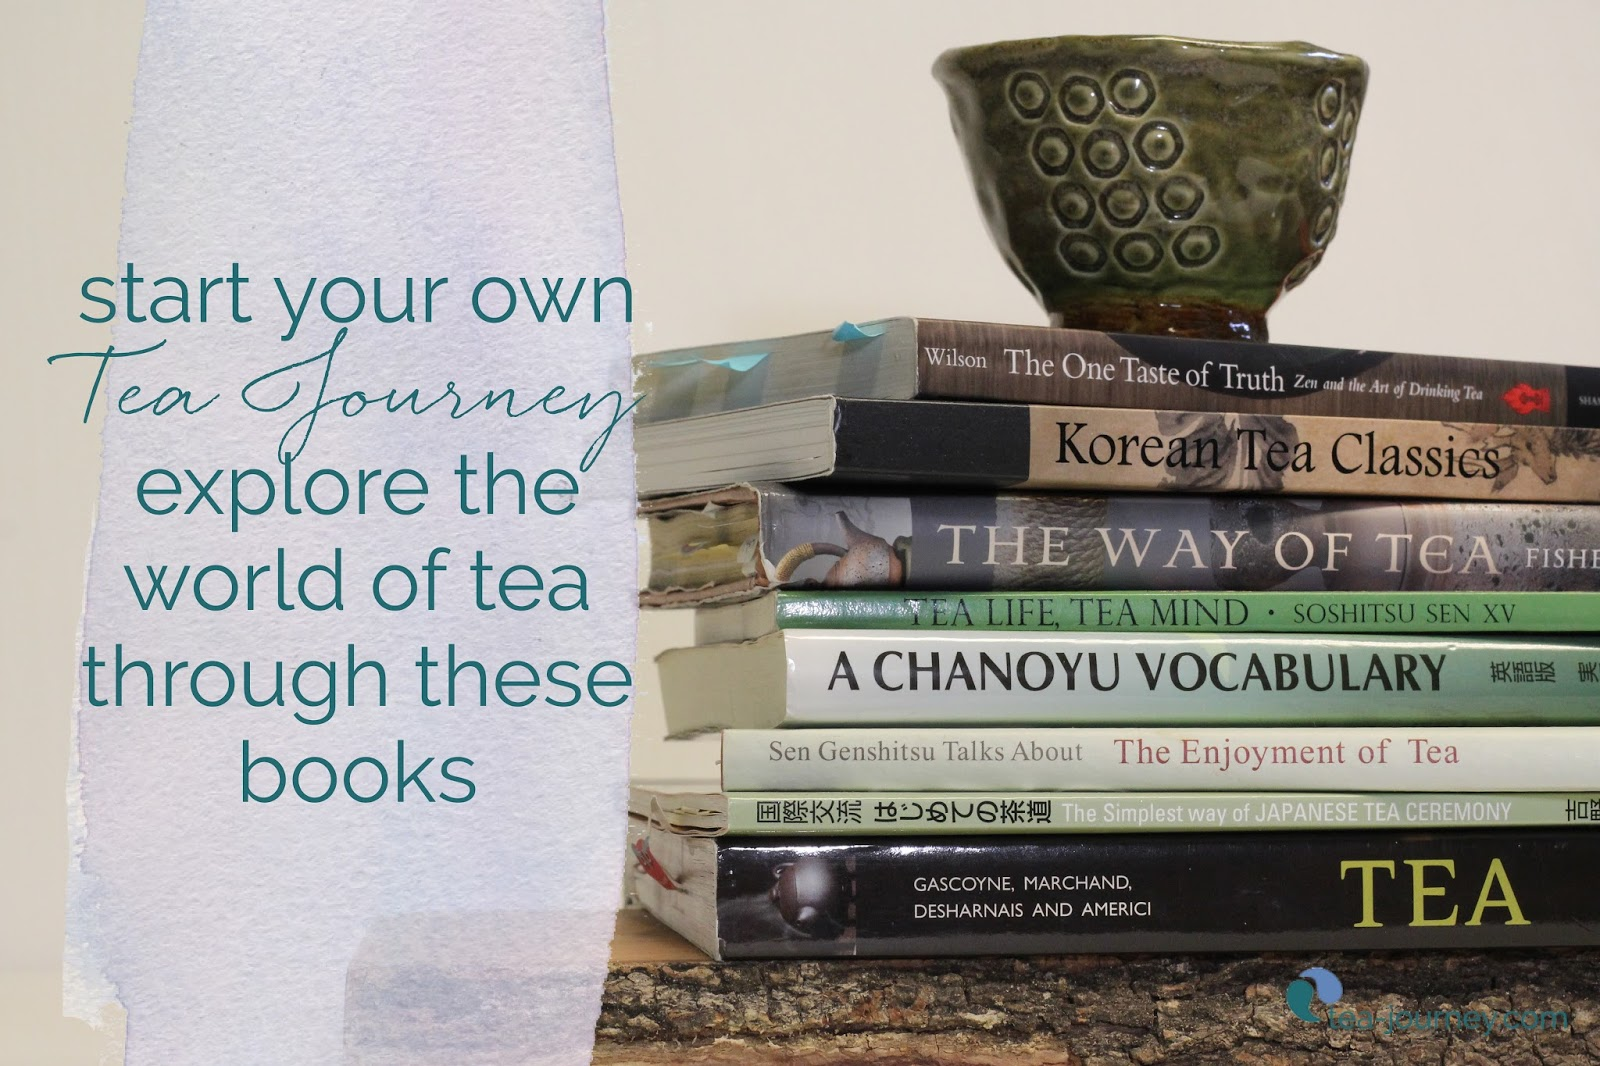 Self discovery can start anywhere even with tea. Start your own tea Journey with this list of books to inspire your next steps in your path with the way and spirituality.